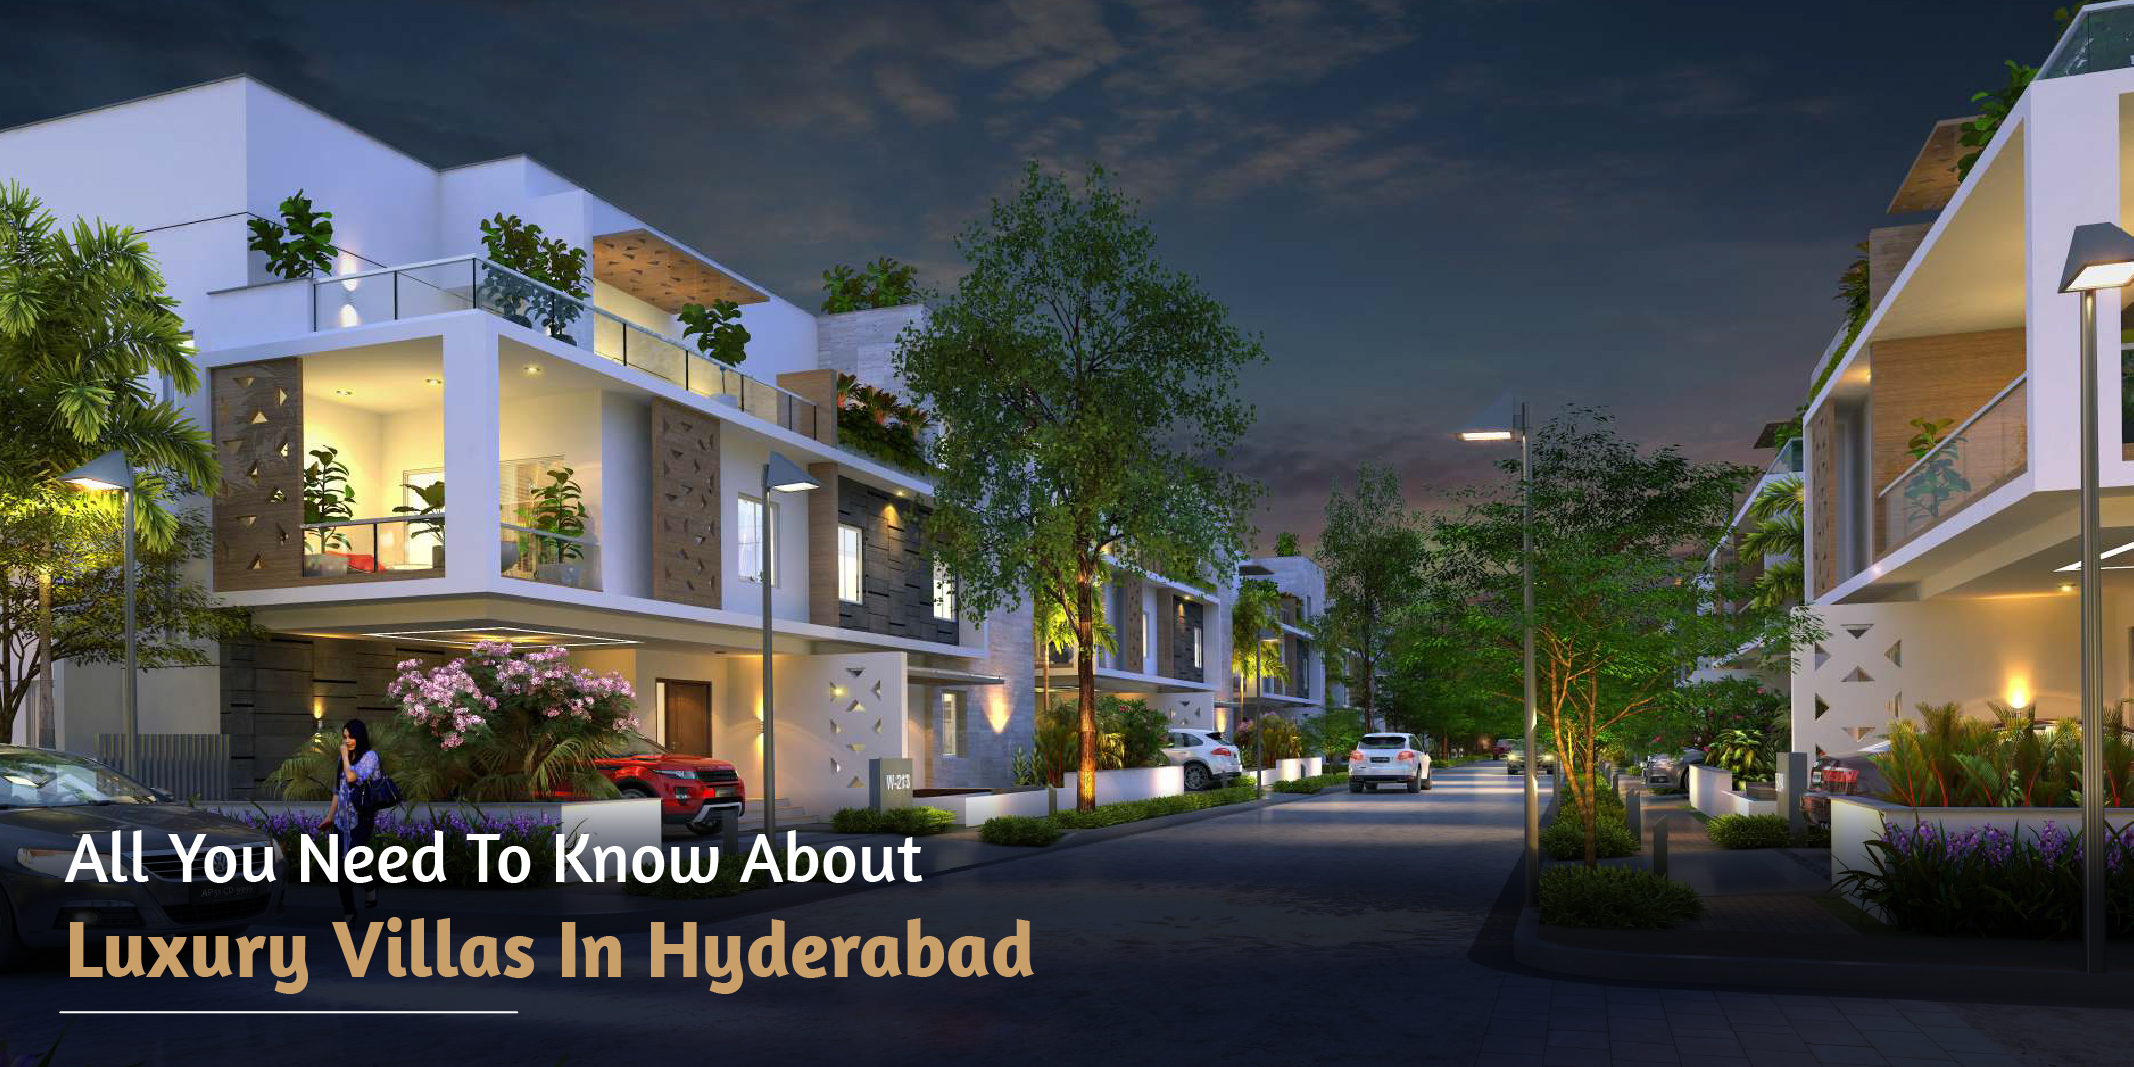 All you need to know about luxury villas in Hyderabad